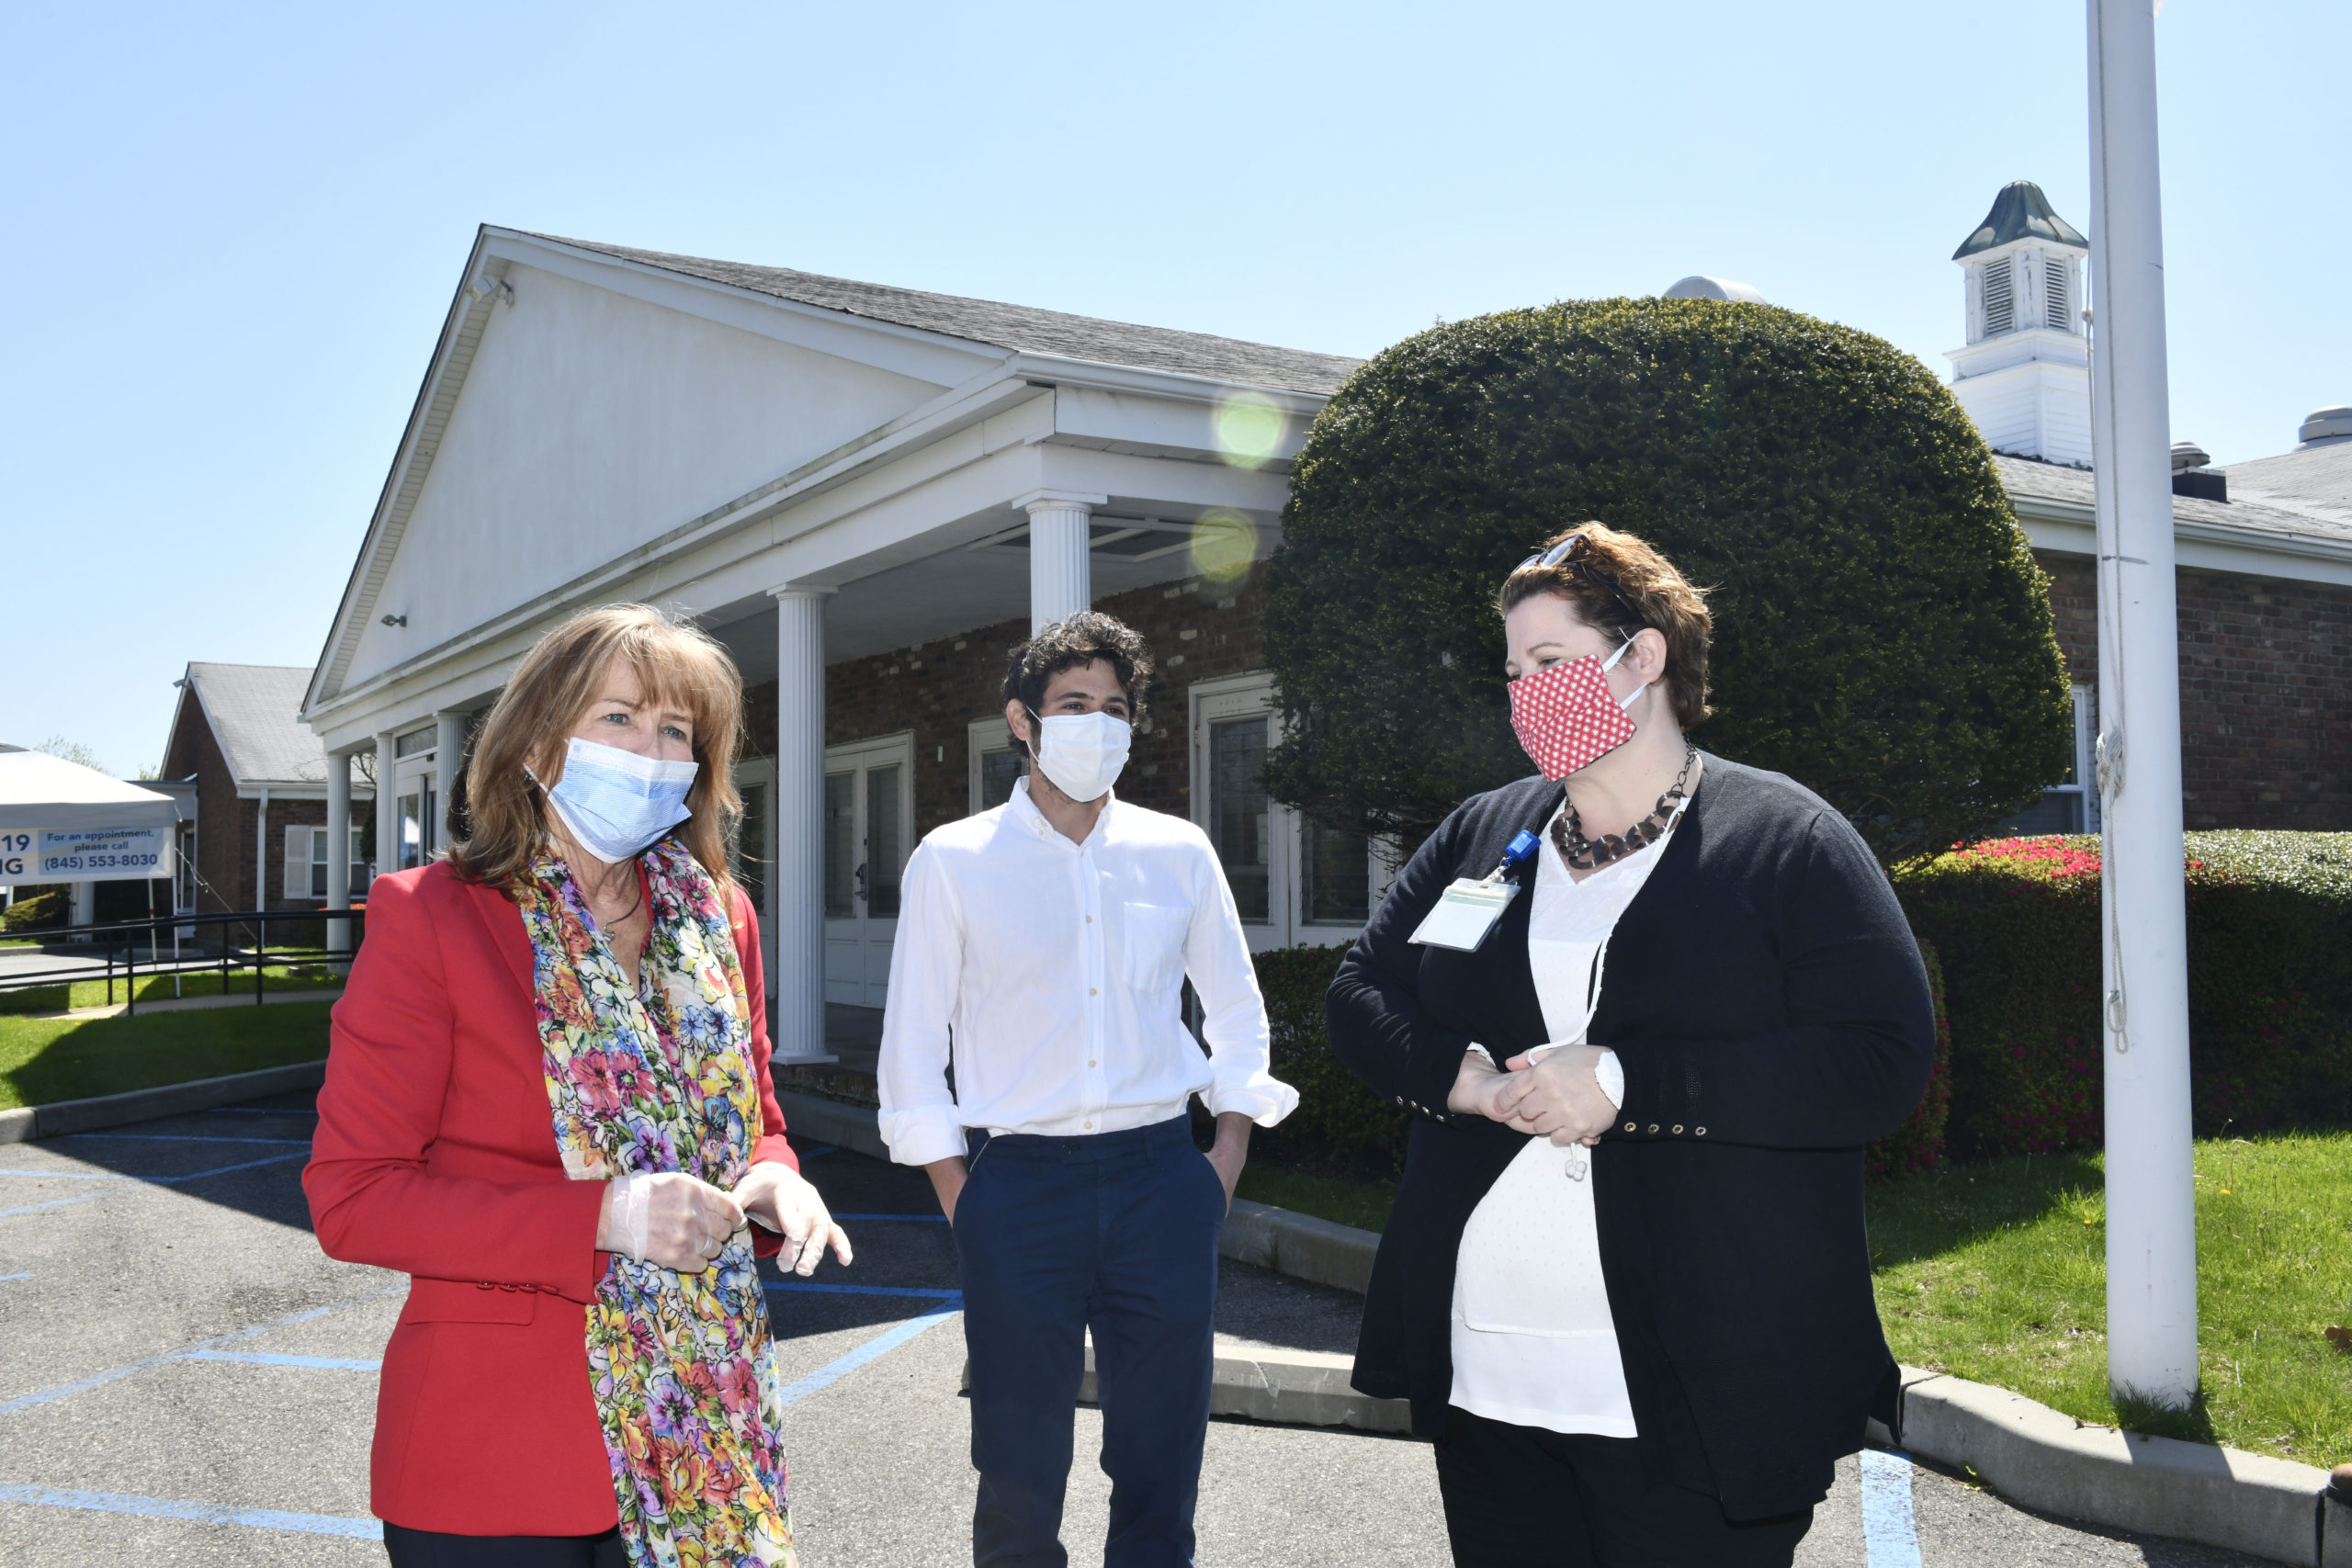 Anne Kauffman Nolon, CEO of HRHCare, Southampton Village Mayor Jesse Warren and Allison Dubois, MPH Chief Operating Officer and Executive Vice President of HRHCare at the Southampton tersting site on Thursday, May 7.  DANA SHAW